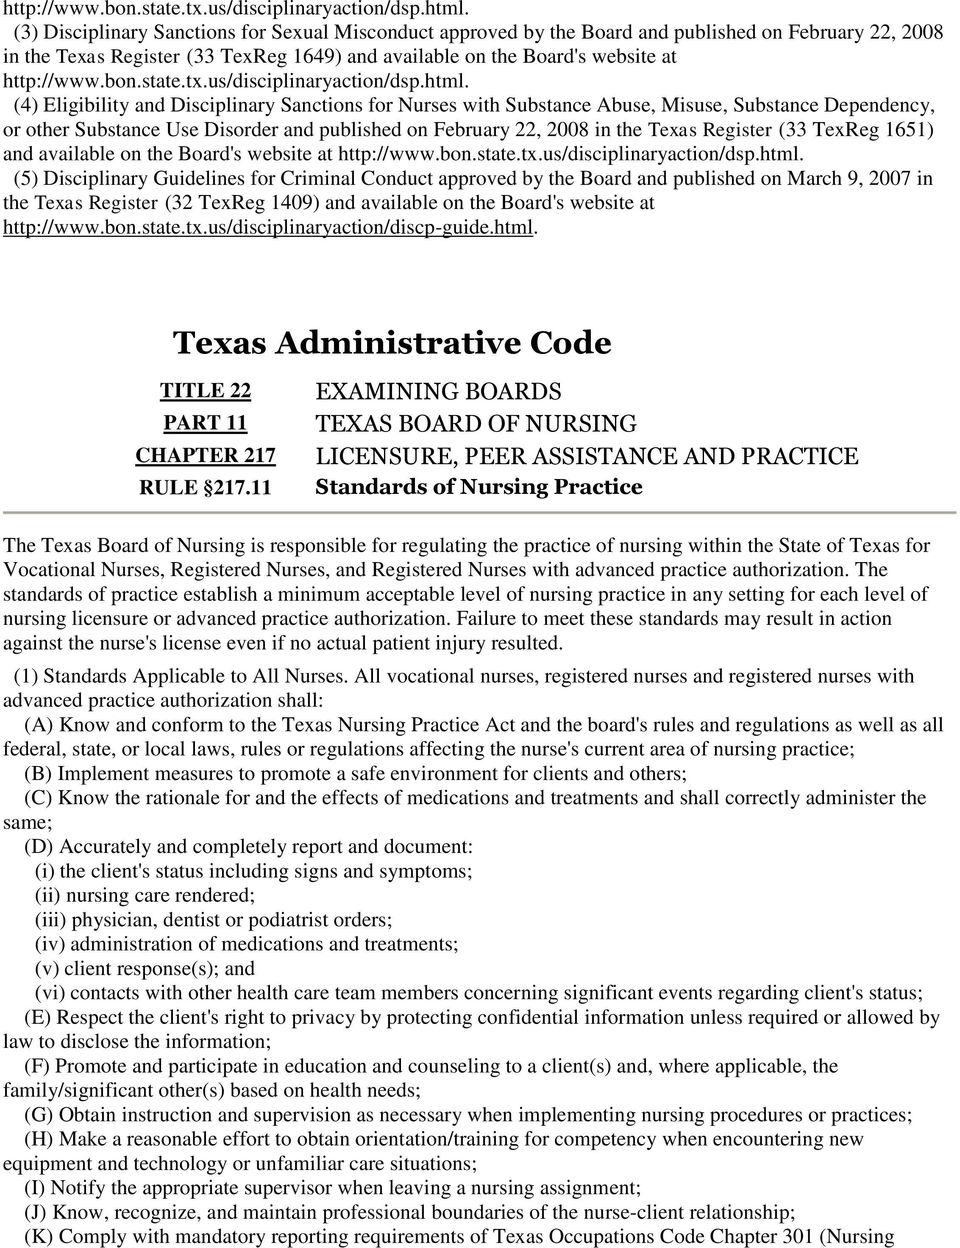 Eligibility and Disciplinary Sanctions for Nurses with Substance Abuse, Misuse, Substance Dependency, or other Substance Use Disorder and published on February 22, 2008 in the Texas Register (33